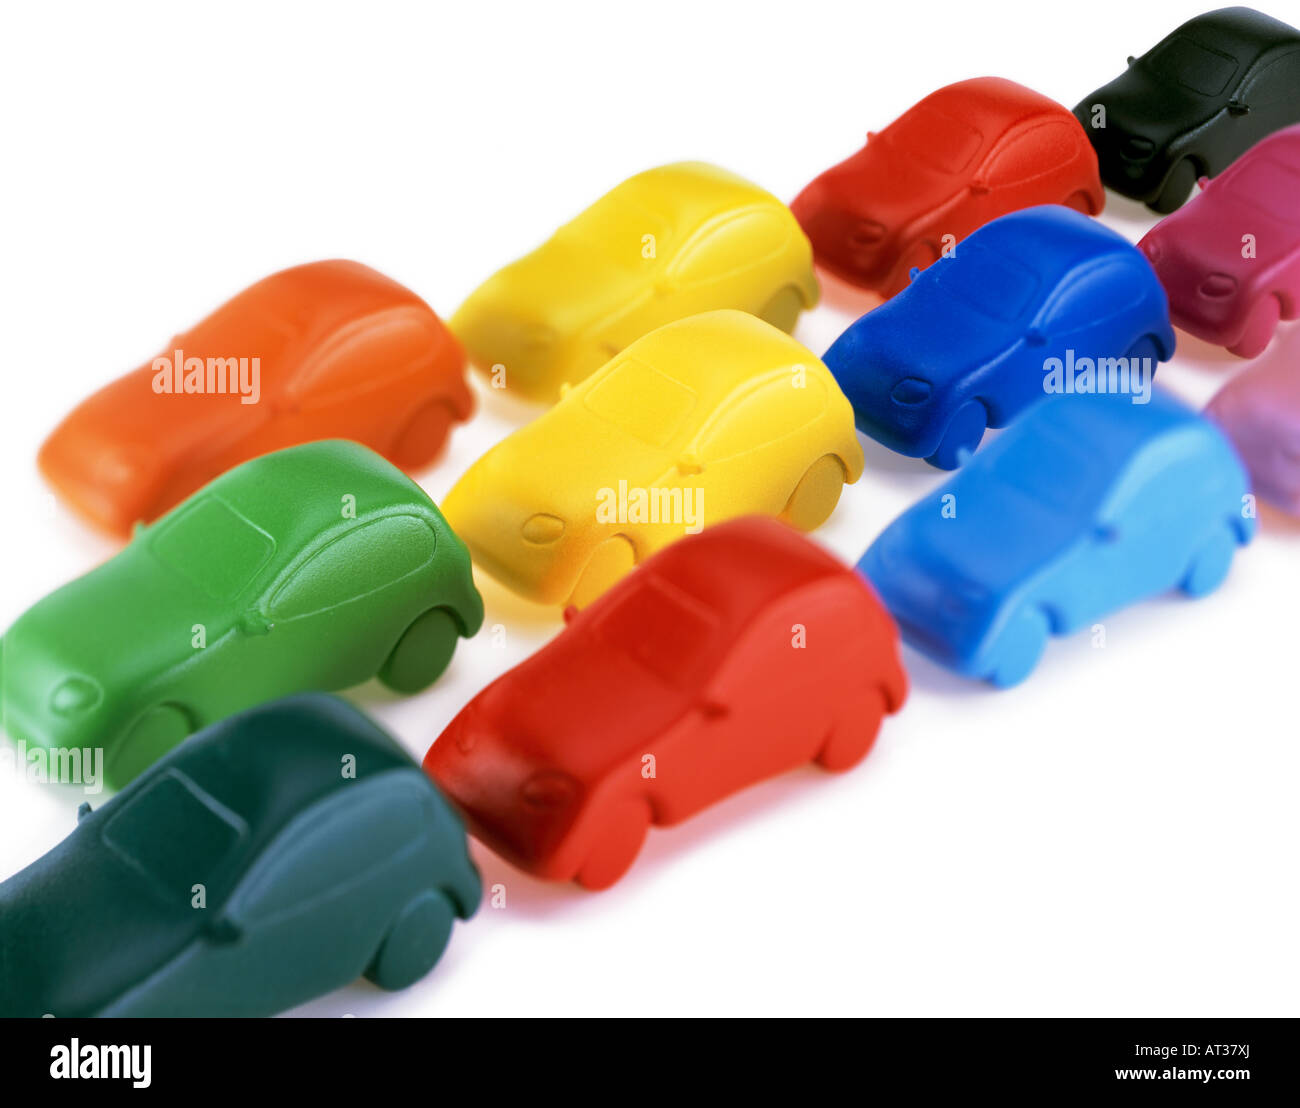 Model cars in a row, white background - Stock Image